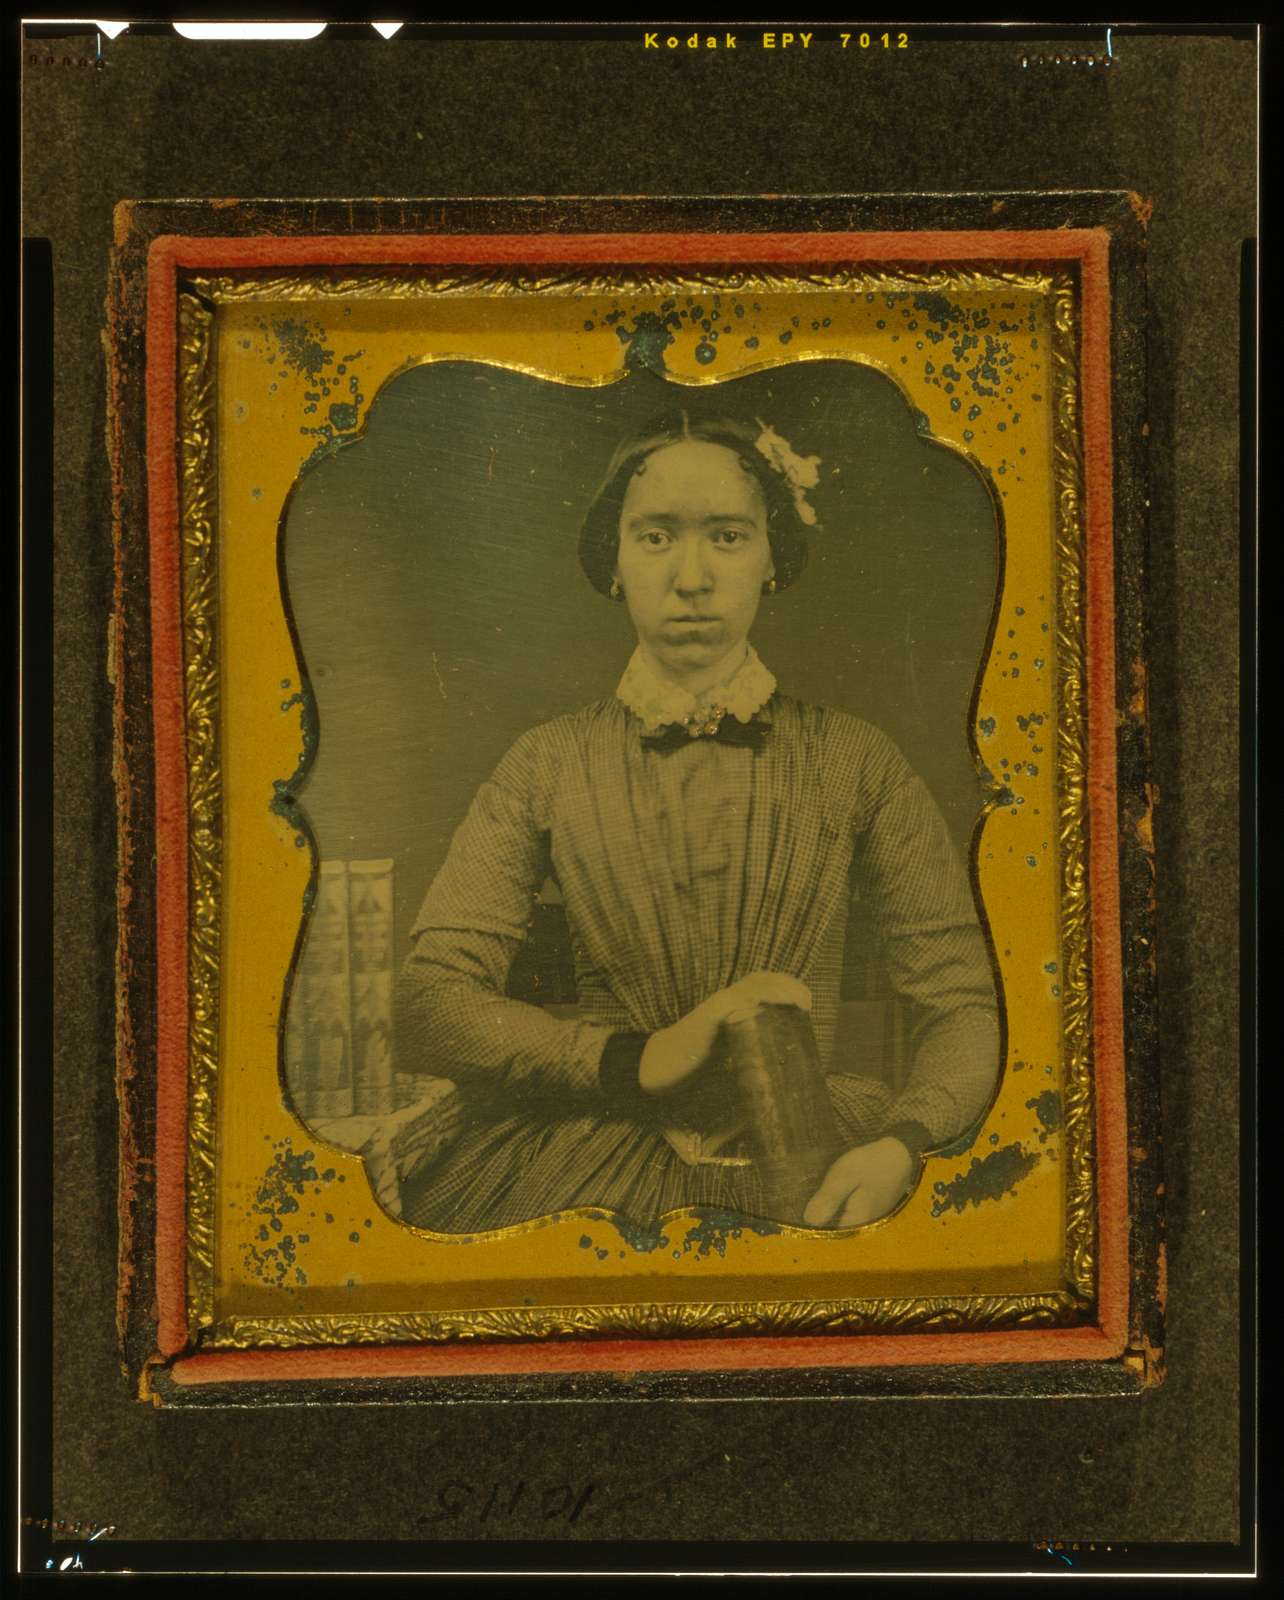 [Unidentified woman holding book, with books on table to her right]